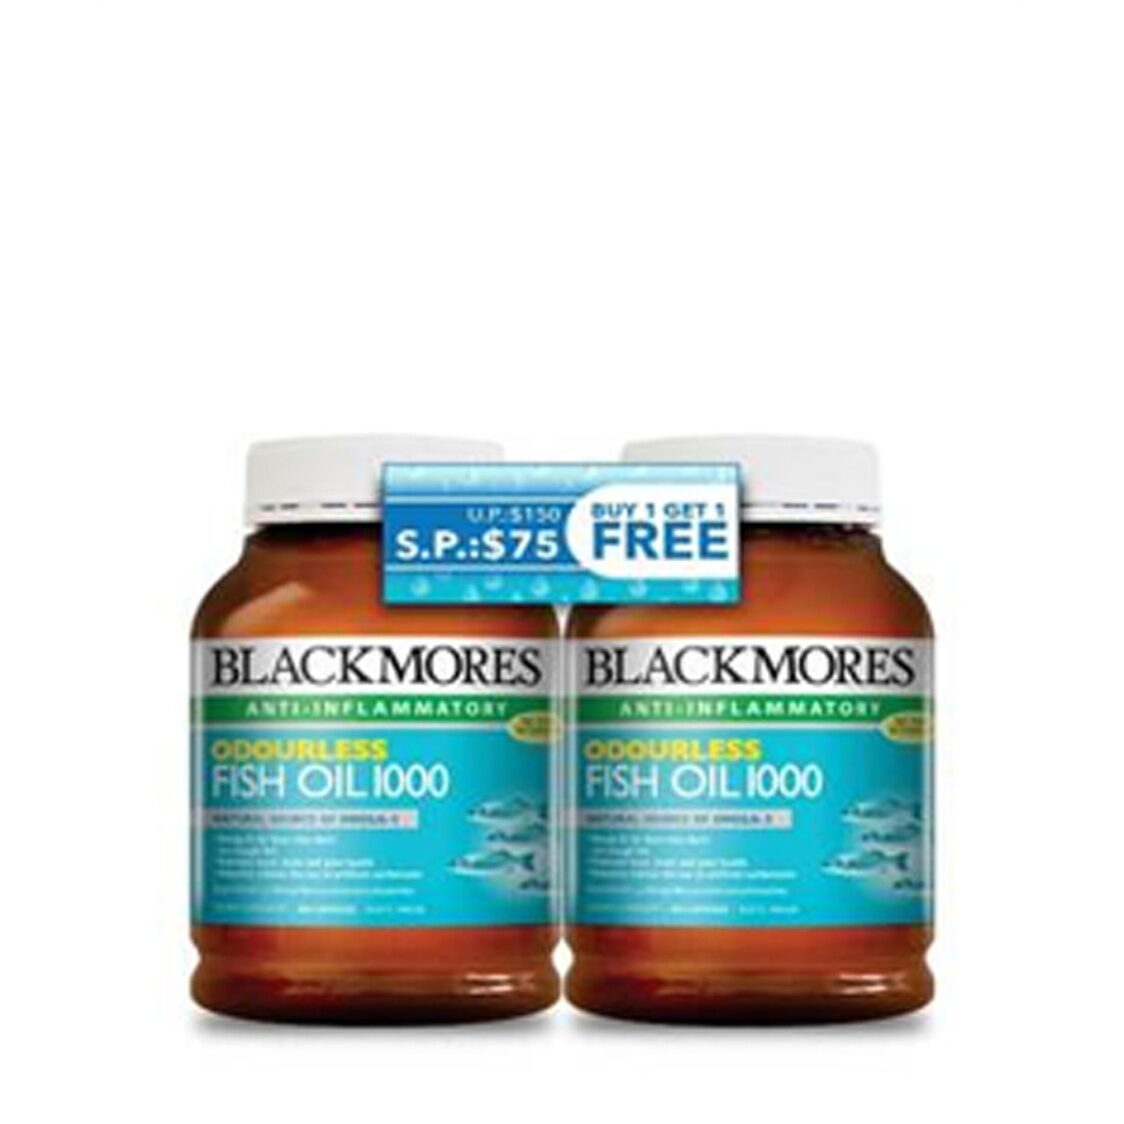 Blackmores Odourless Fish Oil 400s Bundle